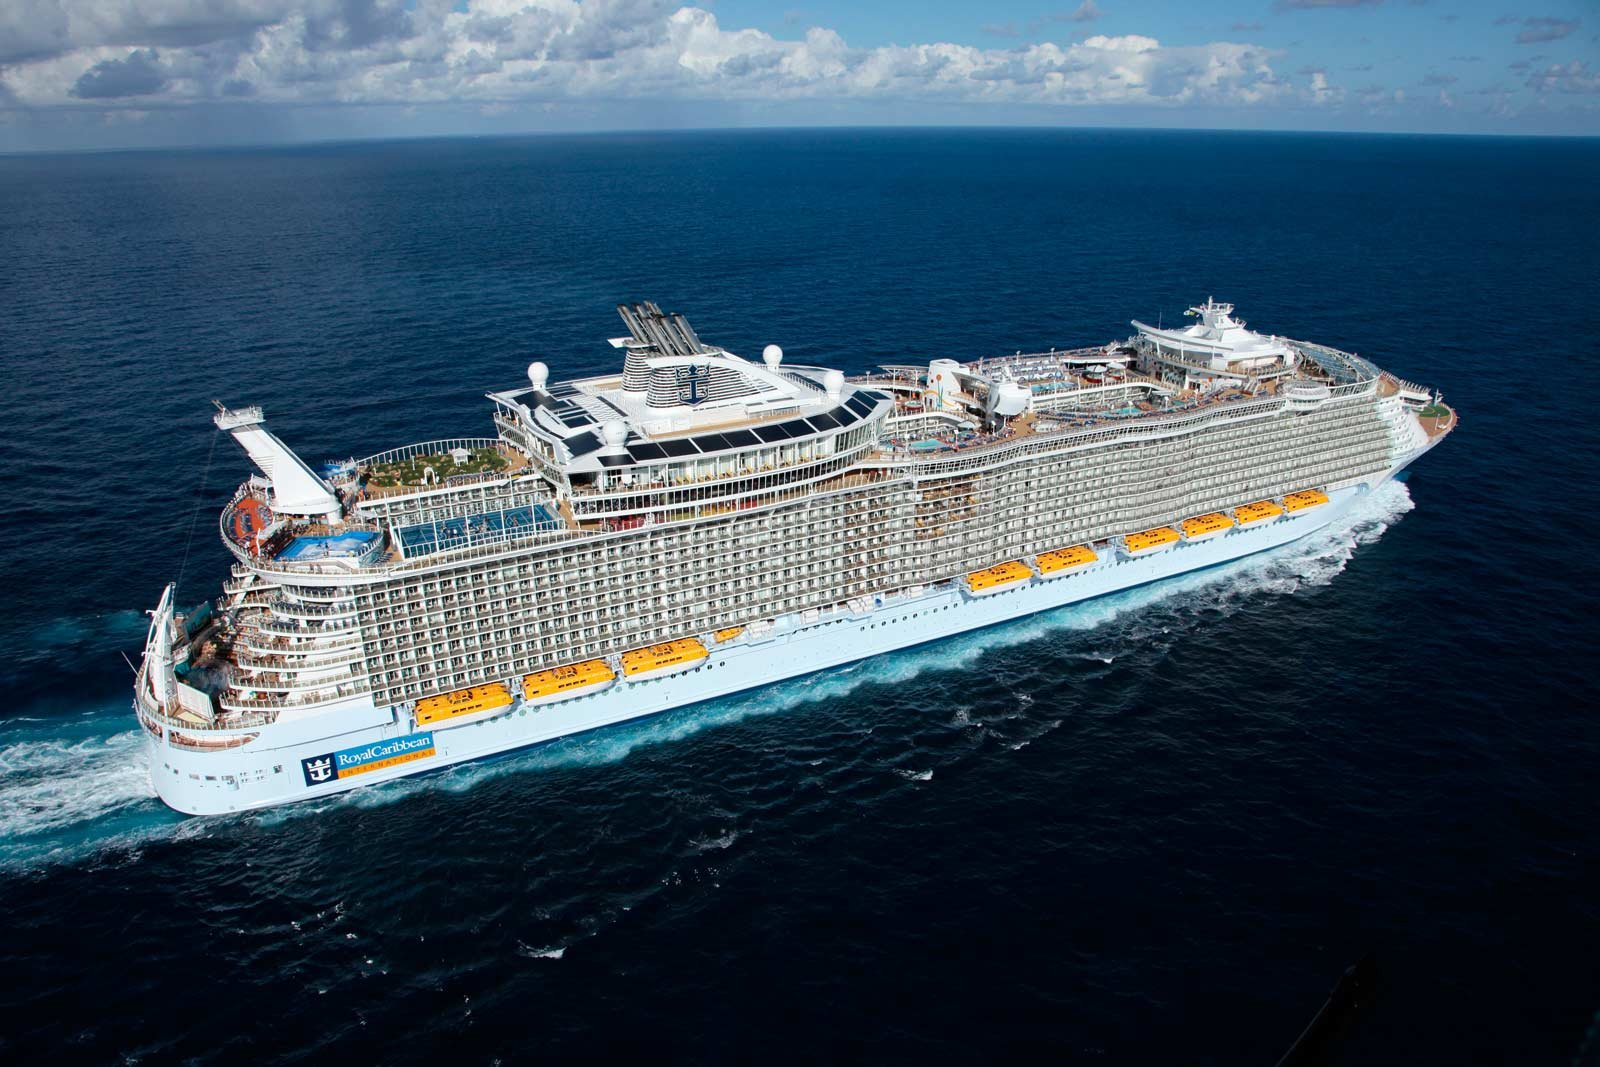 Five Things to Know About Royal Caribbean International's Symphony of the Seas Cruise Ship